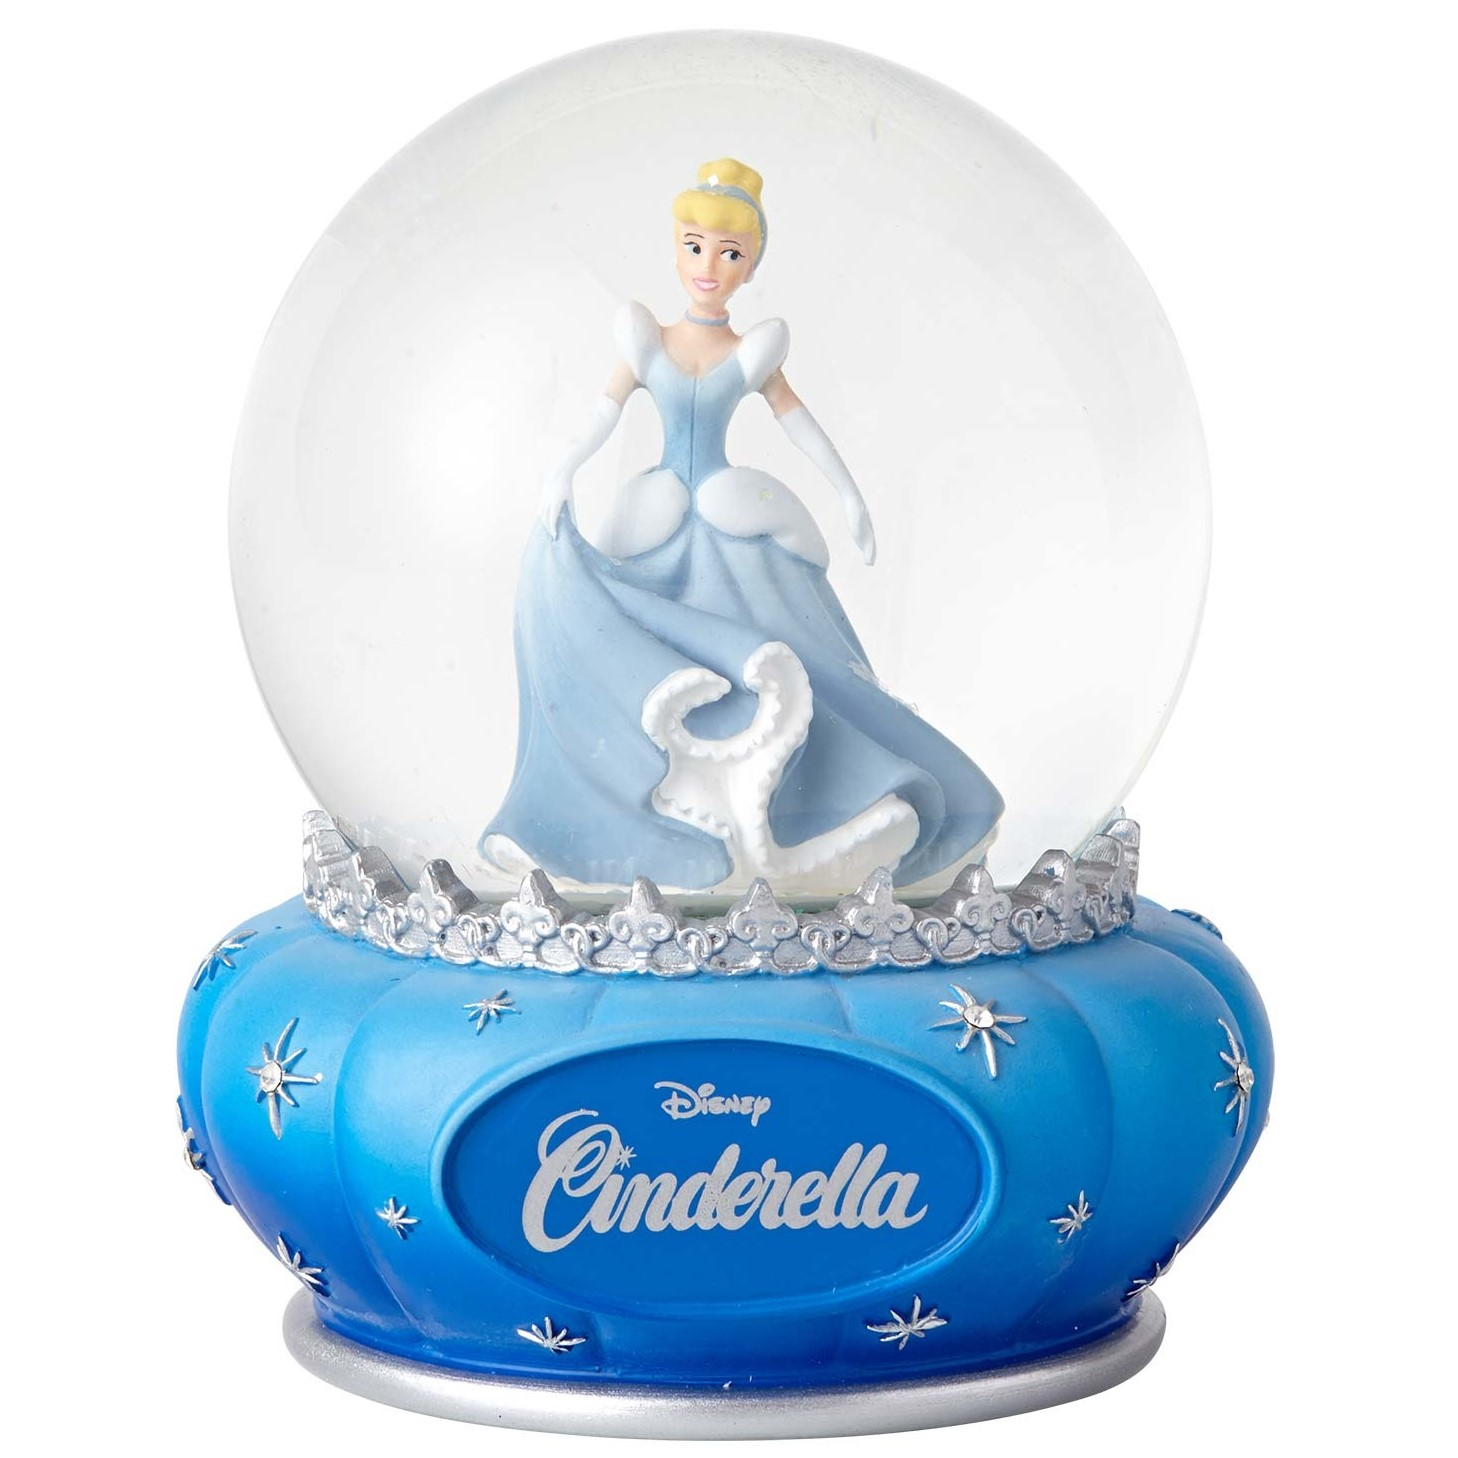 Disney Showcase Cinderella Water Globe